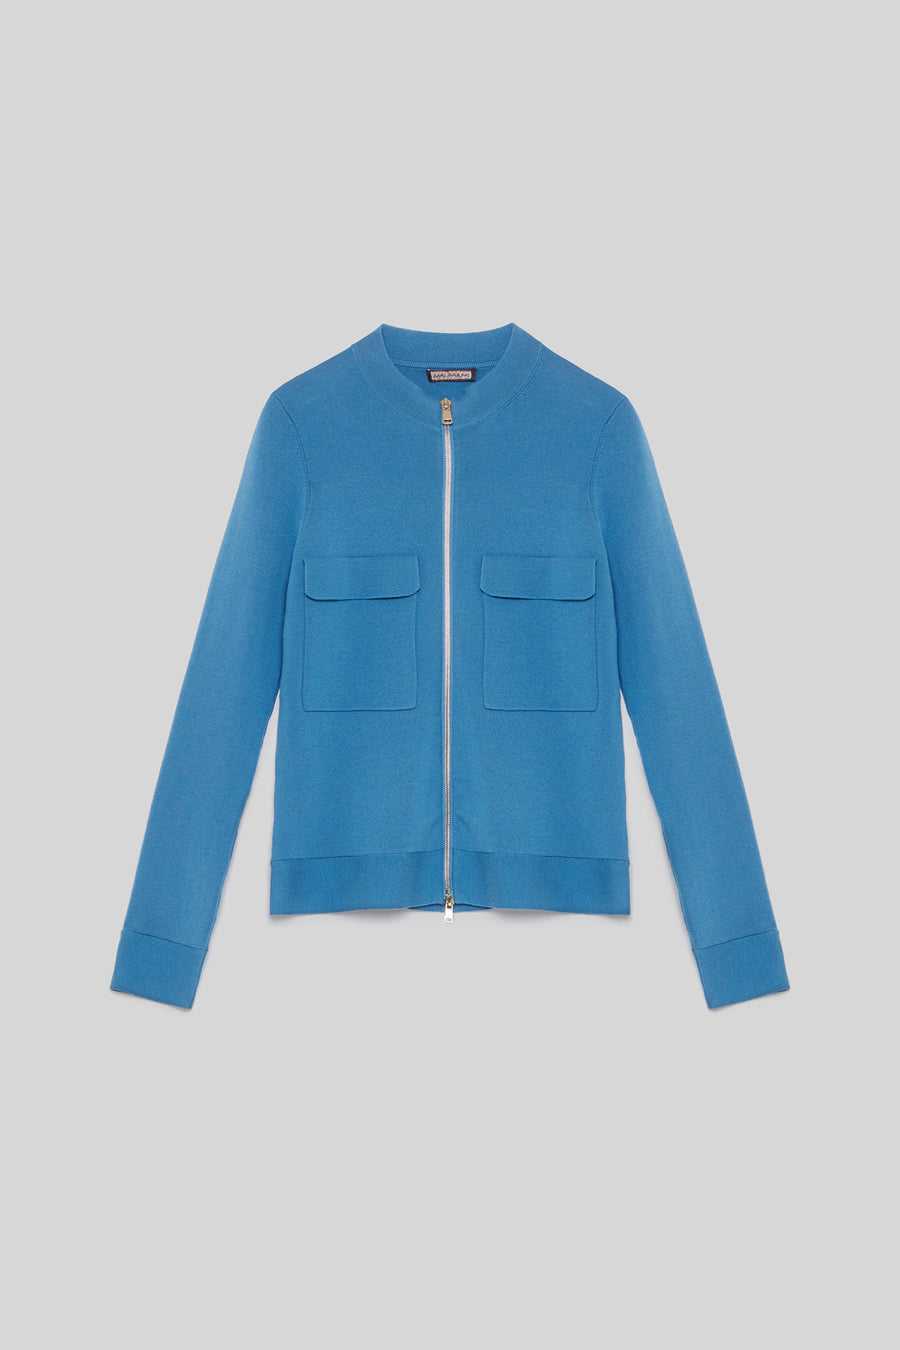 BLUE STITCH JACKET